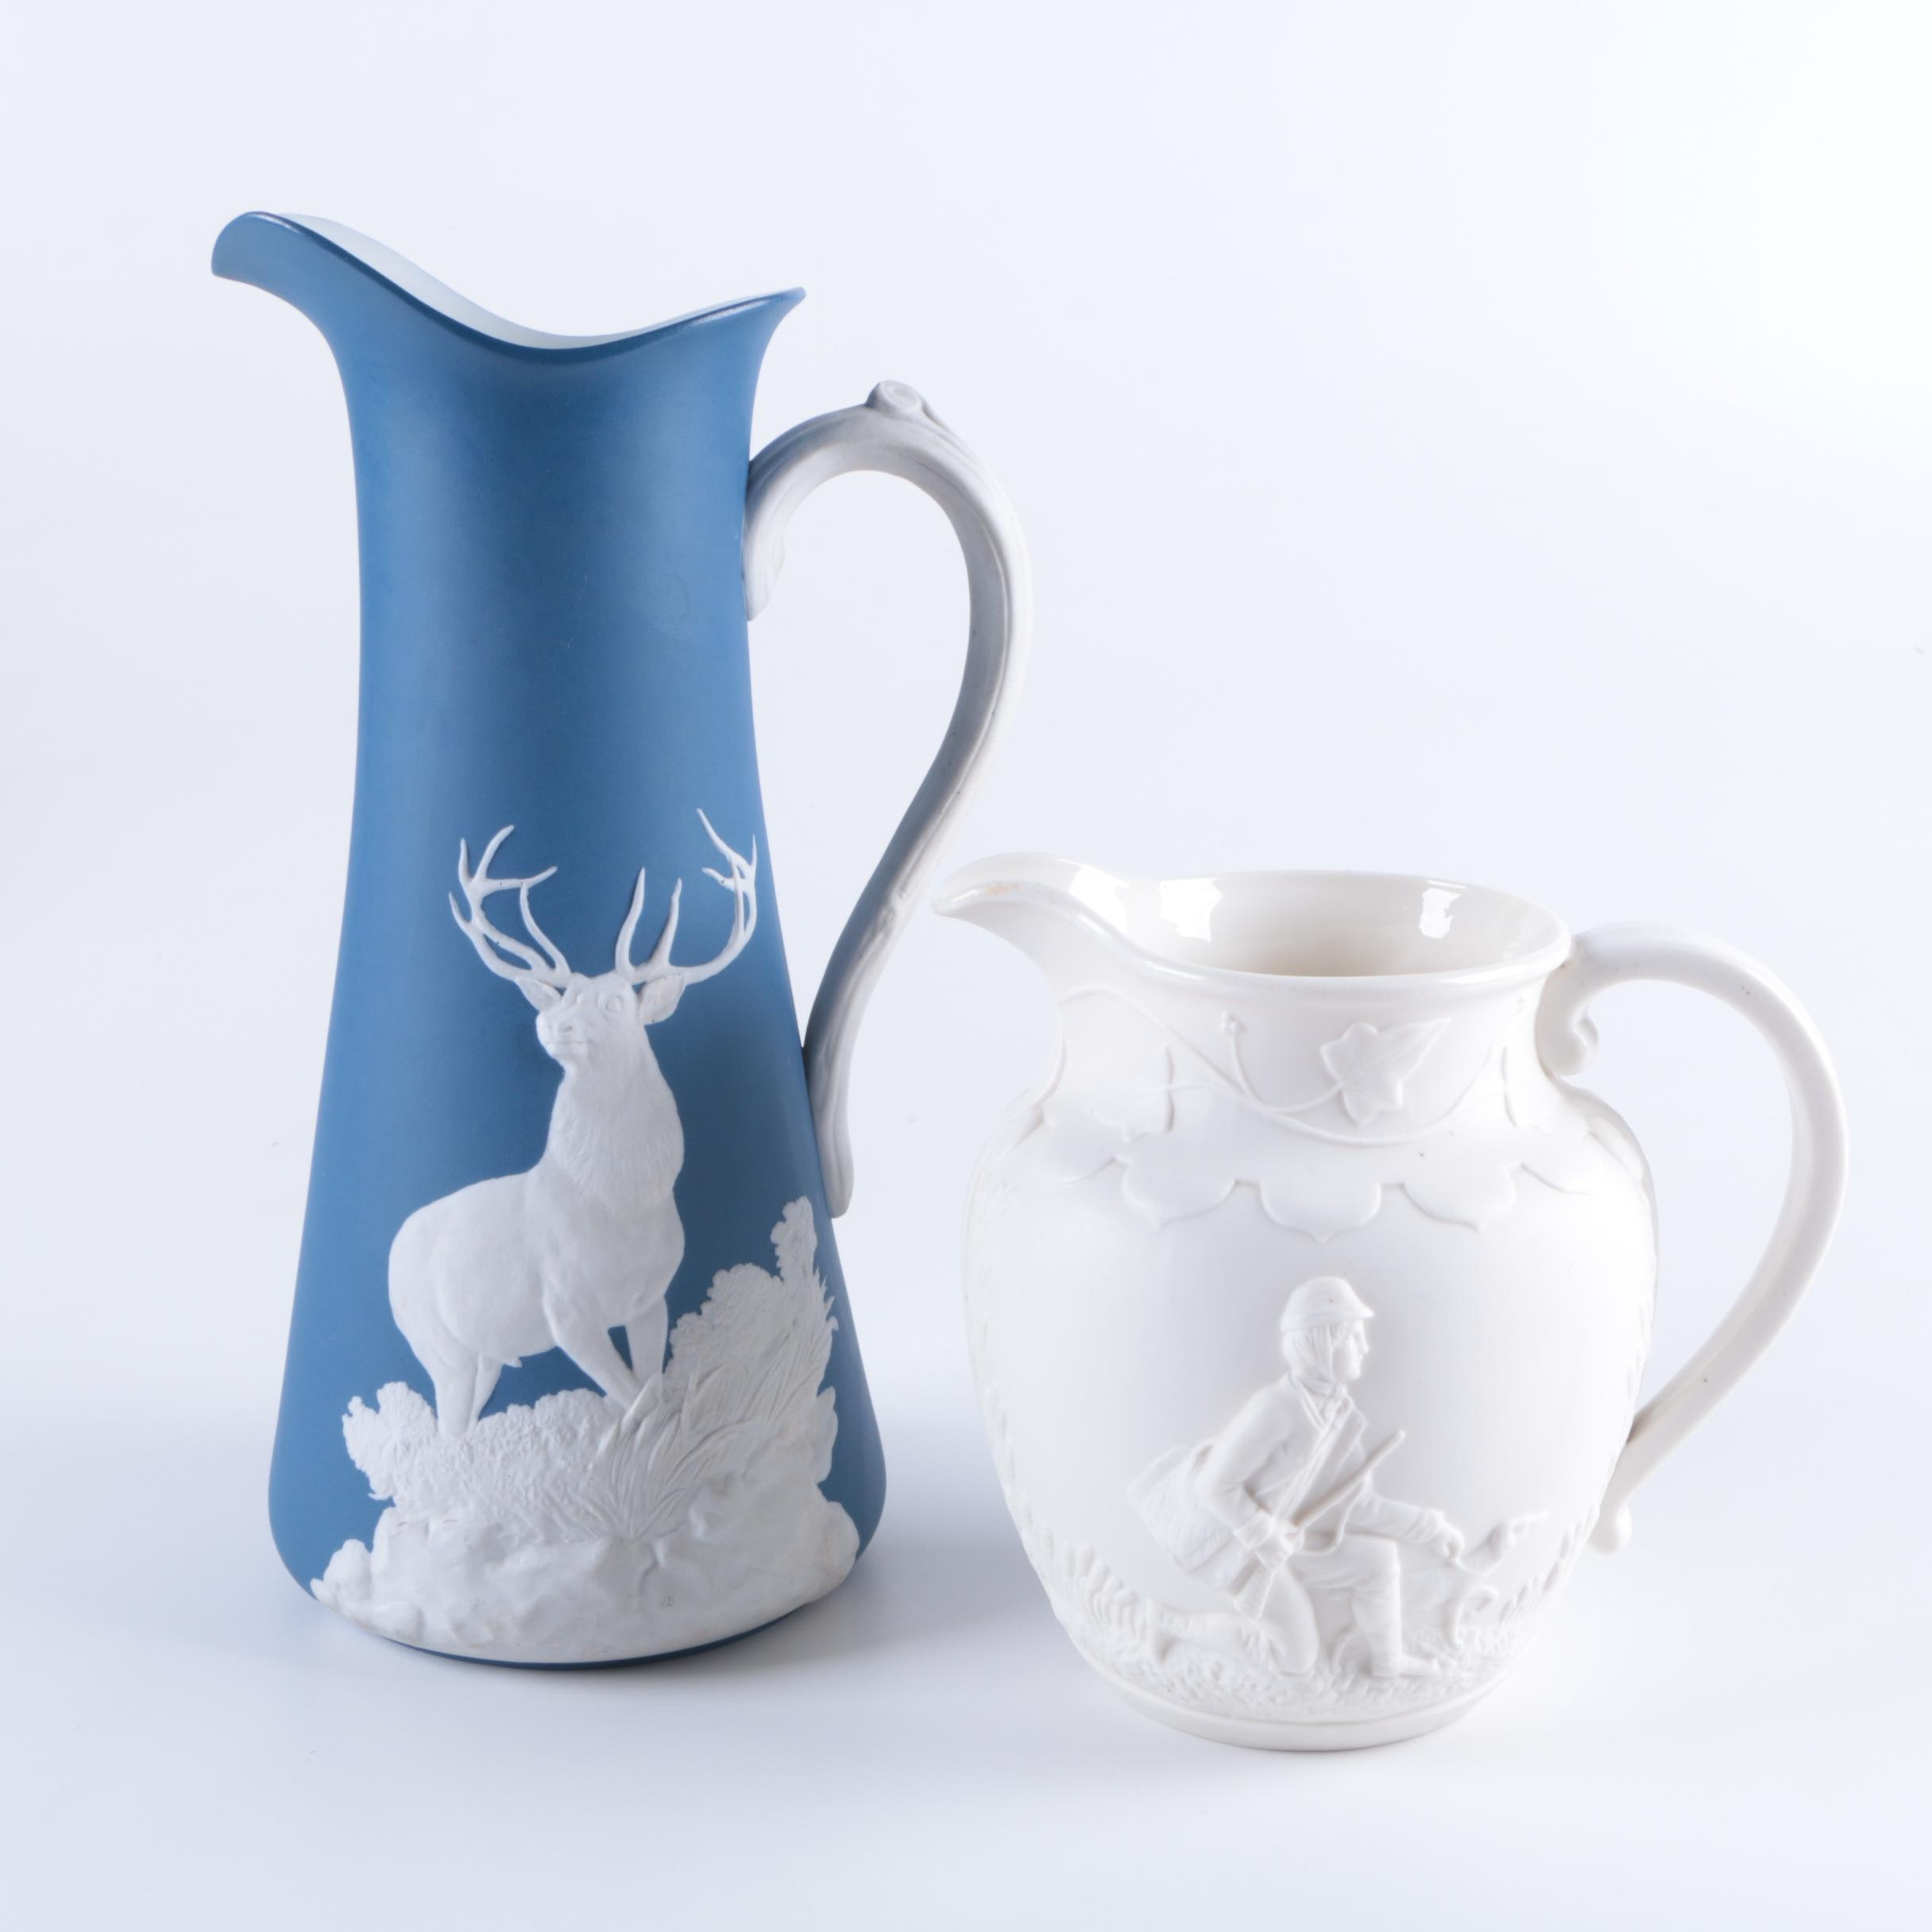 English Porcelain Pitchers in the Style of Wedgwood